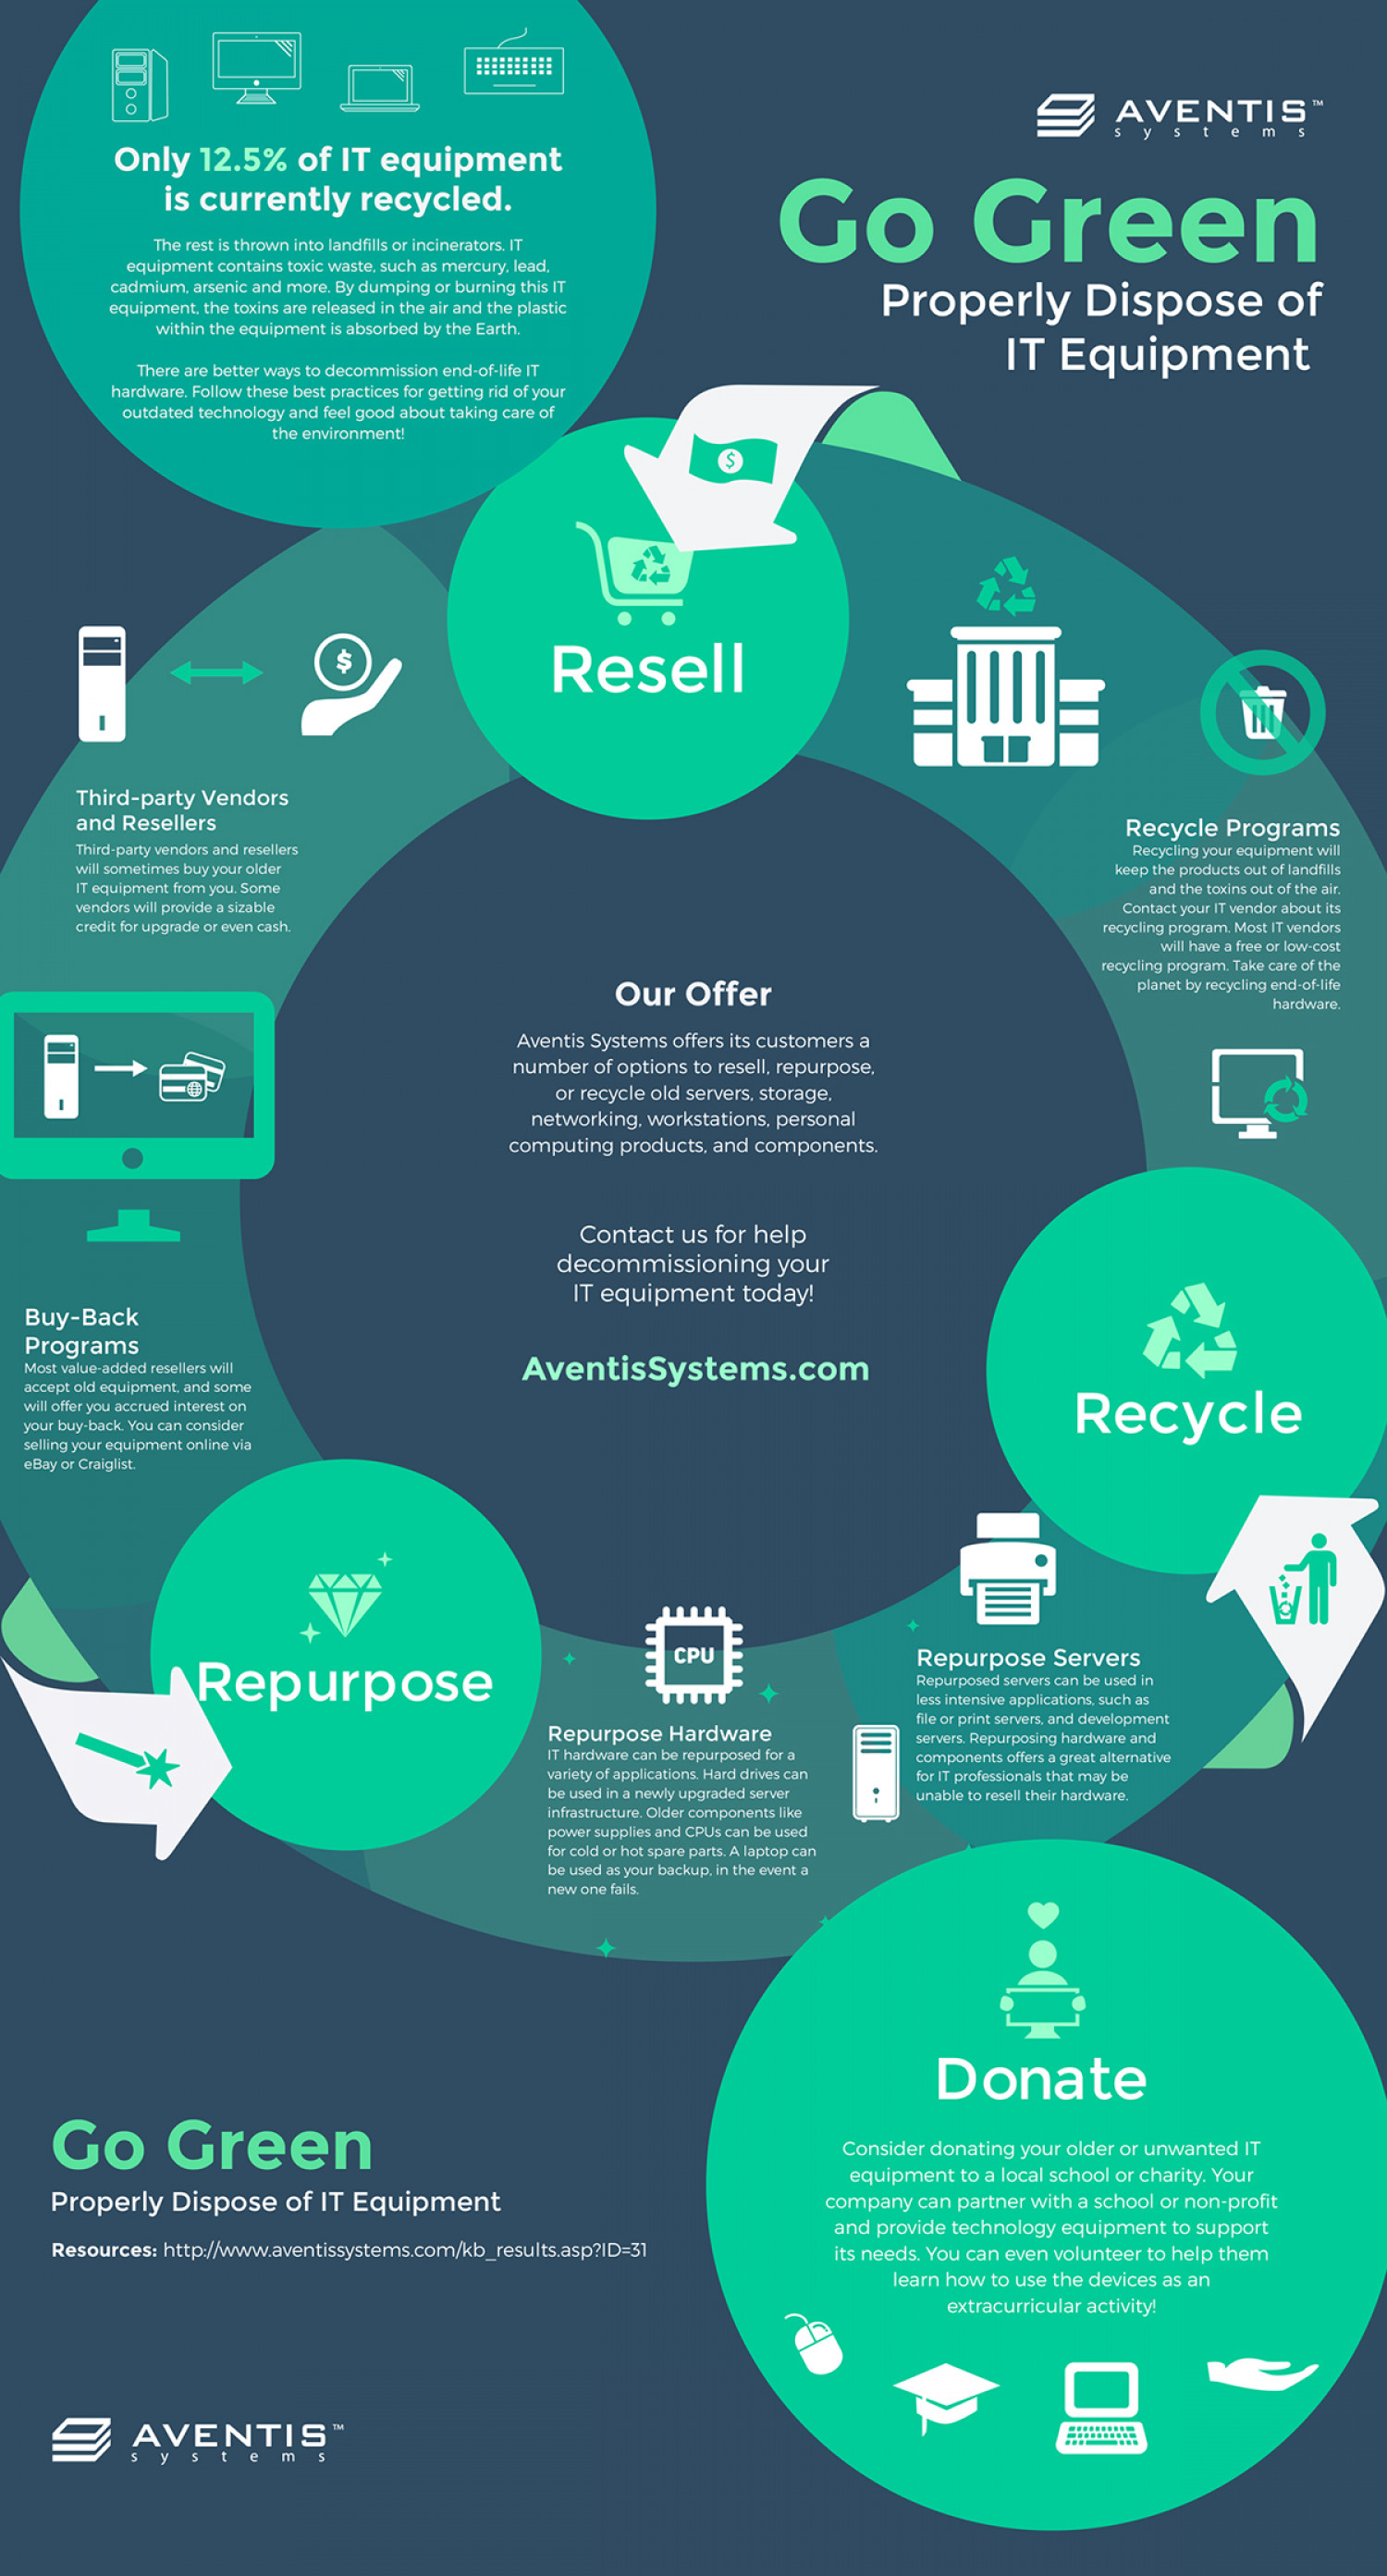 Go Green; Properly Dispose of IT Equipment Infographic